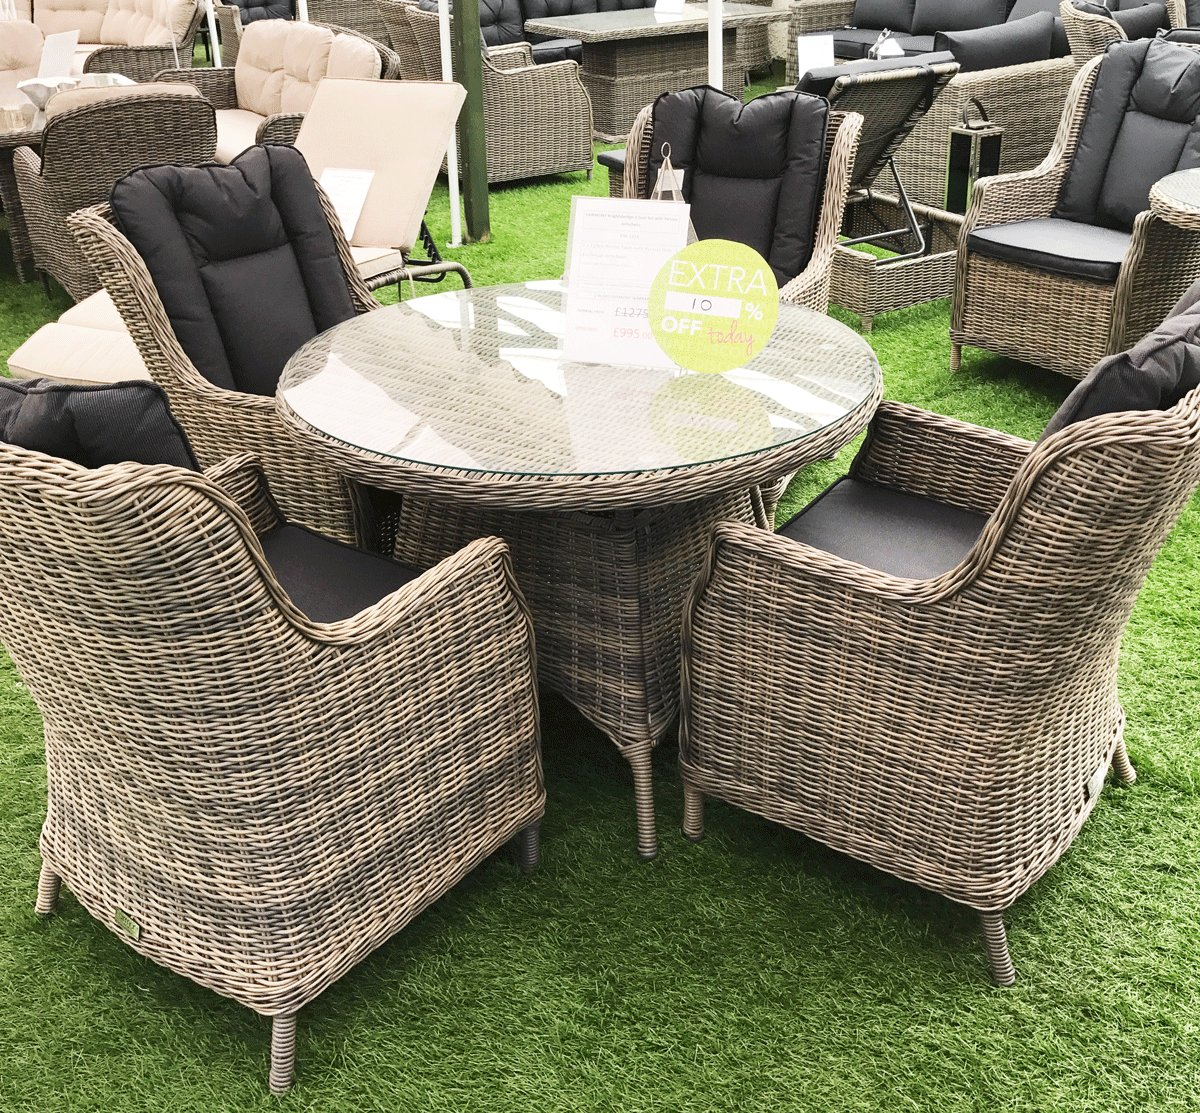 check out some of the fantastic offers available on our garden furniture sets a further 10 off on selected items httpsyoutubesdtmx hz83a - Garden Furniture Offers